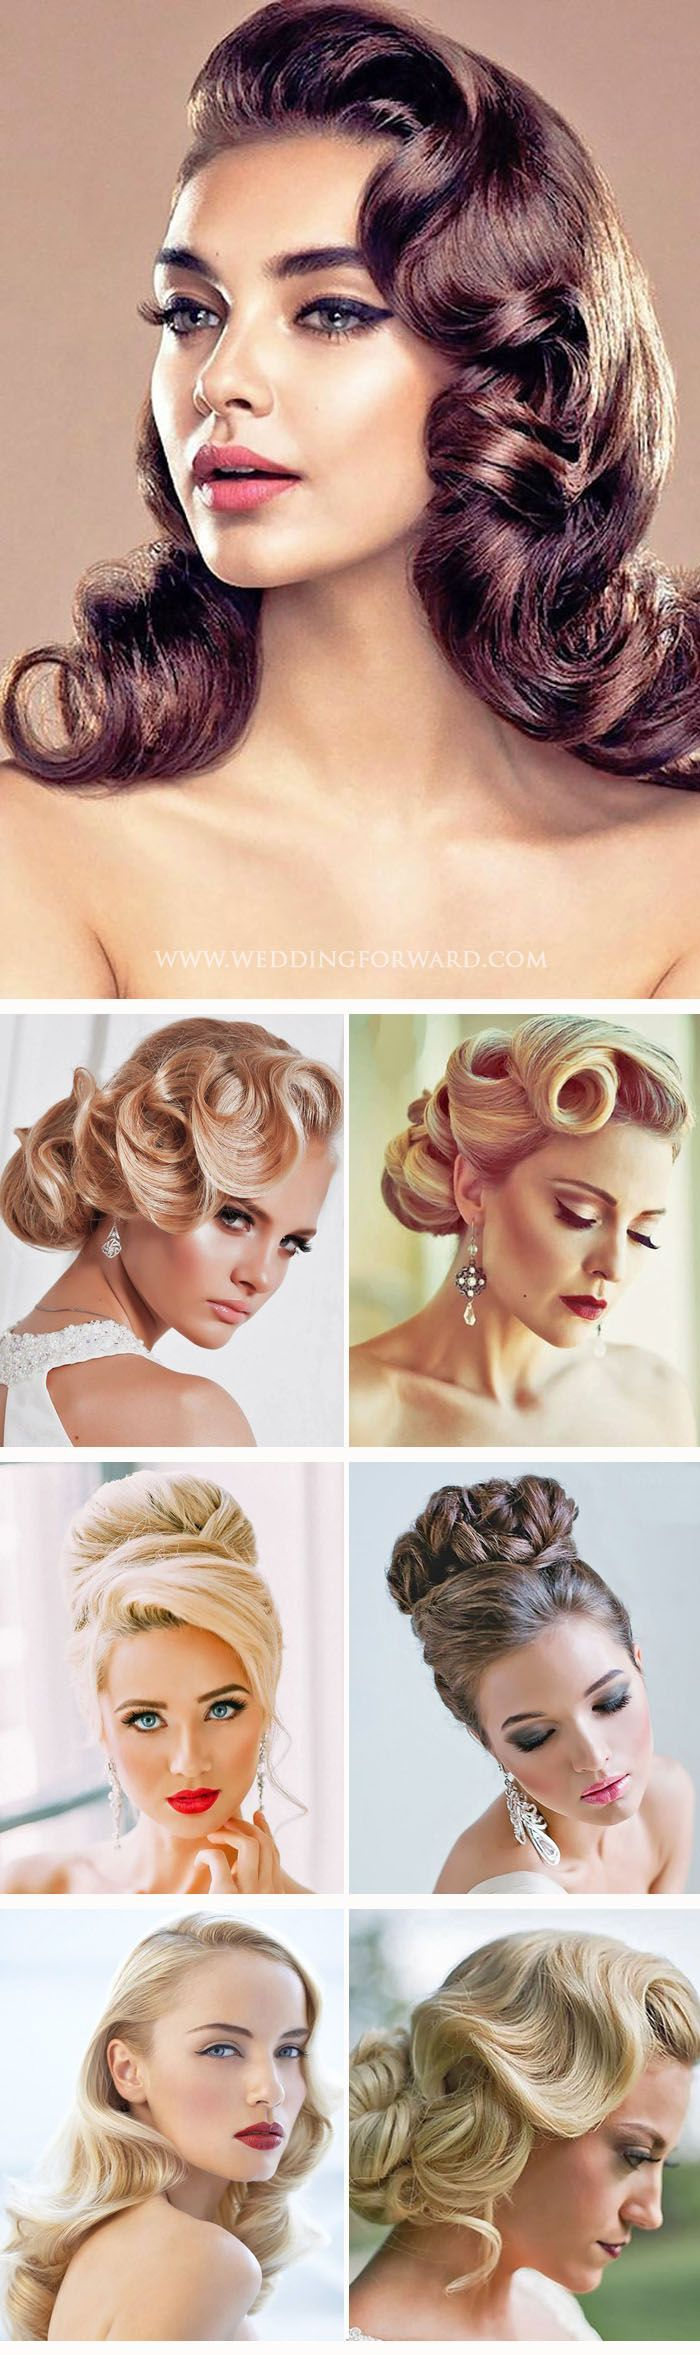 Wedding Hairstyle For Long Hair 24 Utterly Gorgeous Vintage Wedding Hairstyles From 20s Gatsby Style And Sen Weddingtrend Home Of Bridal Trends The Hottest New Wedding Trends Straight From The Experts